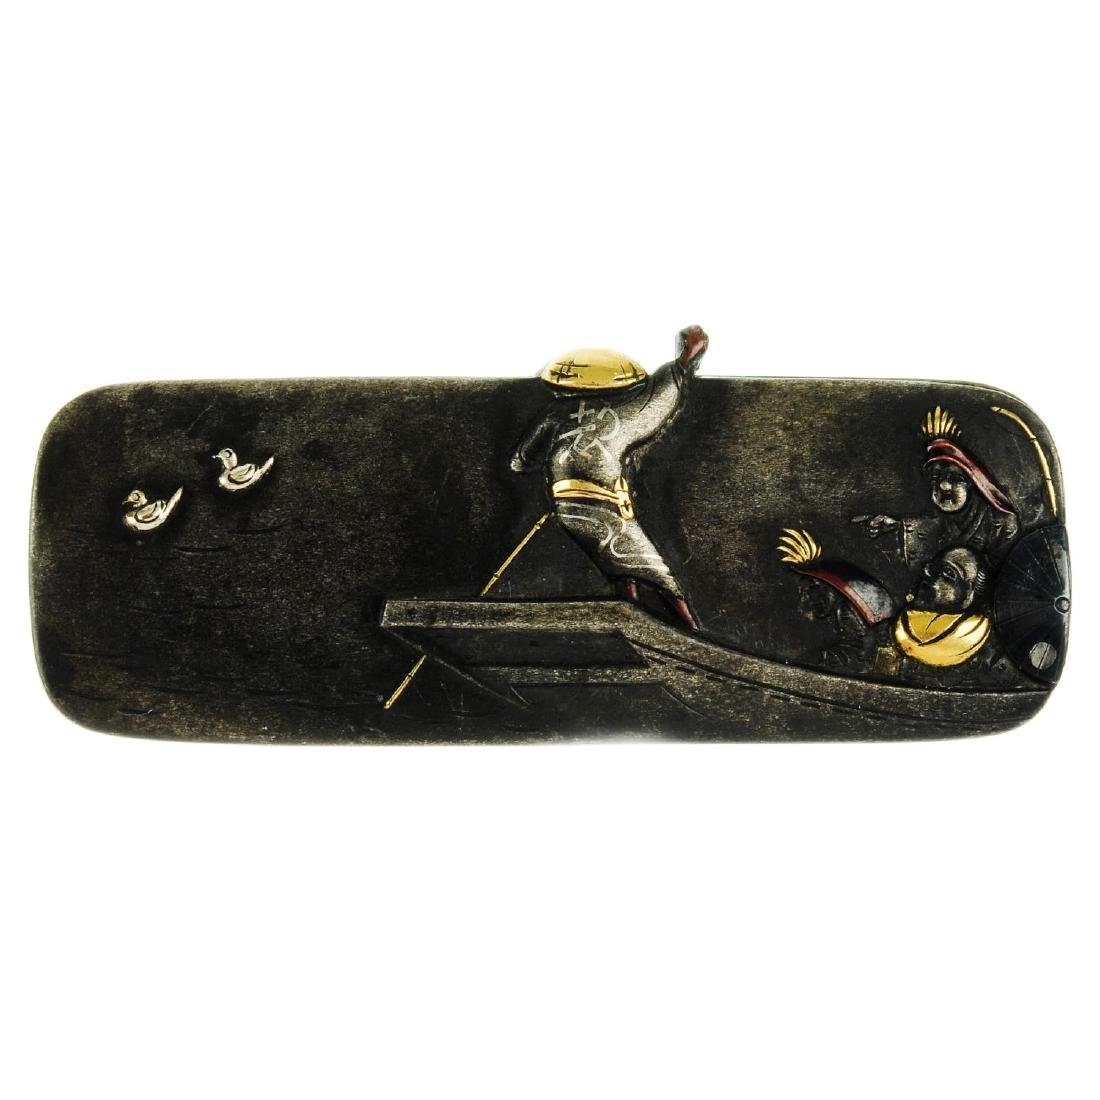 A late 19th century Japanese Shakudo purse clasp. Of